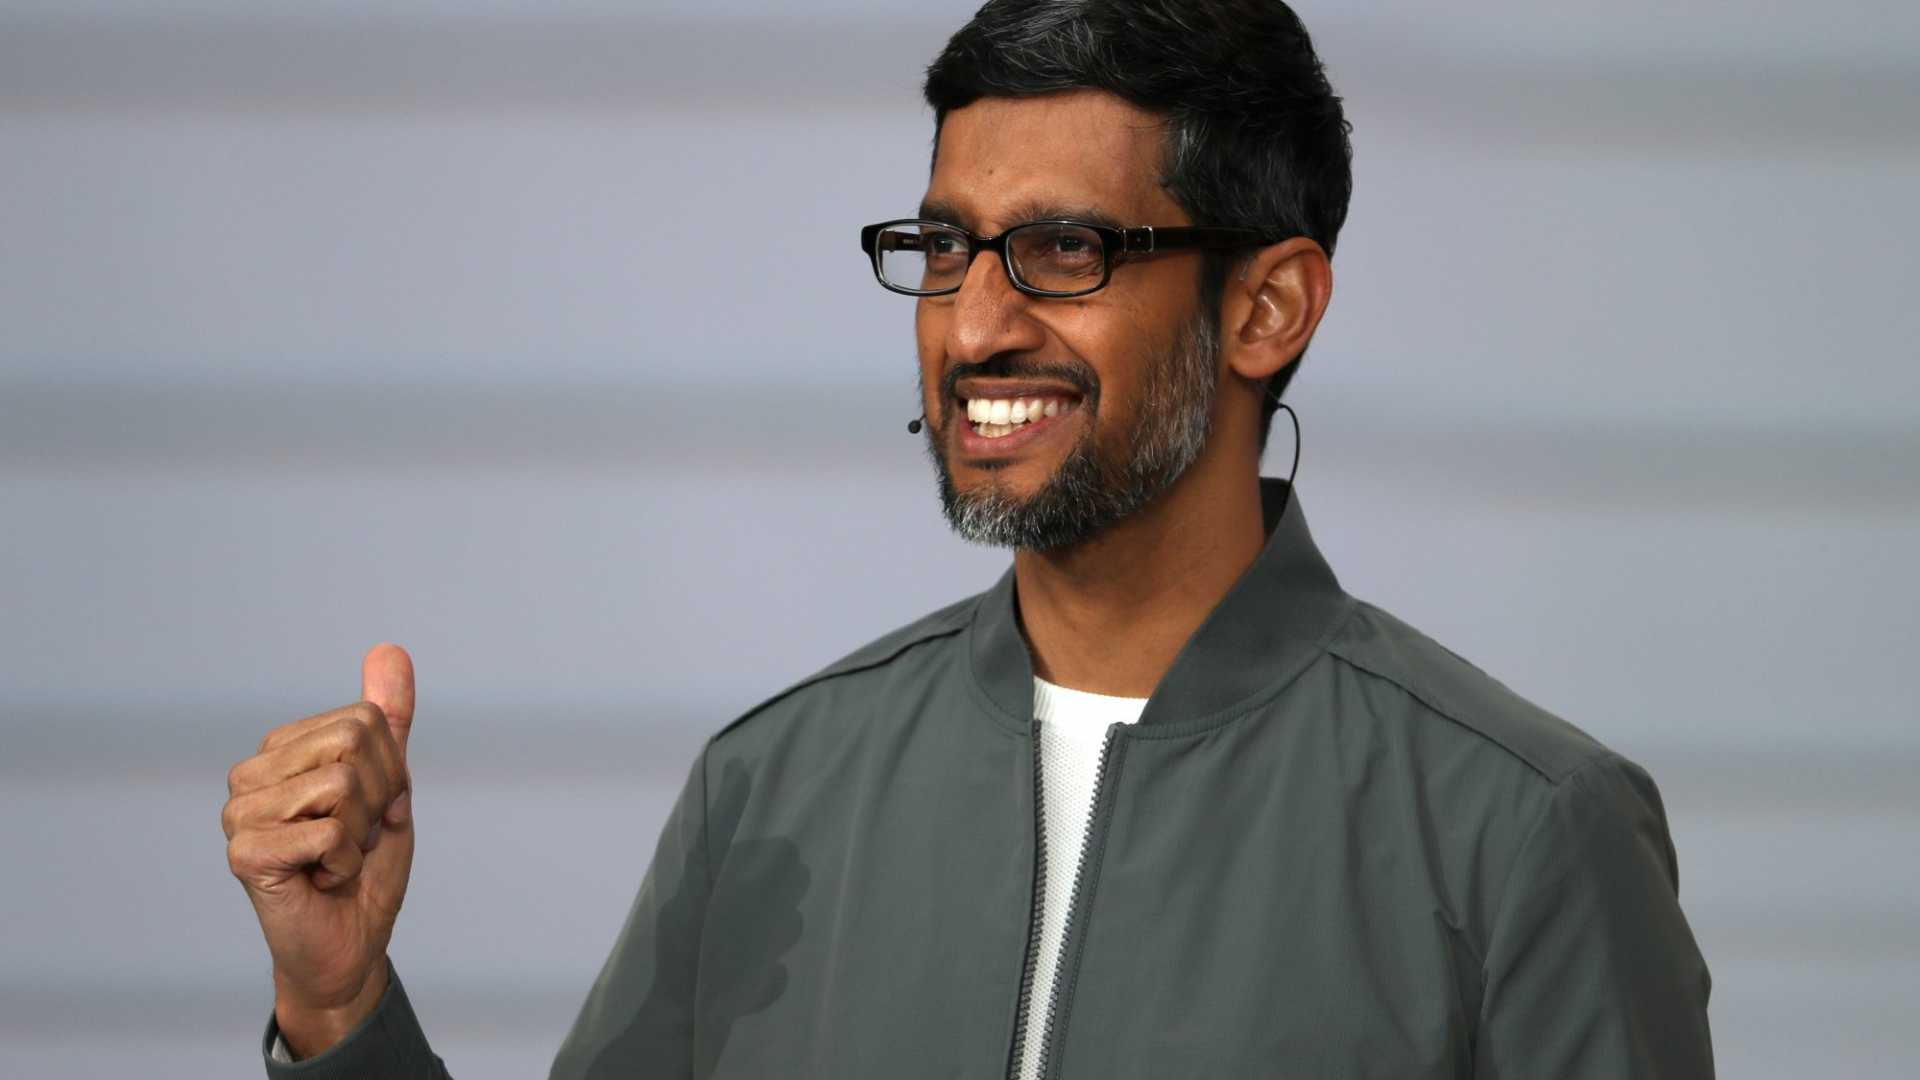 Google CEO Sundar Pichai Got a $242 Million Pay Package to Go With His Promotion